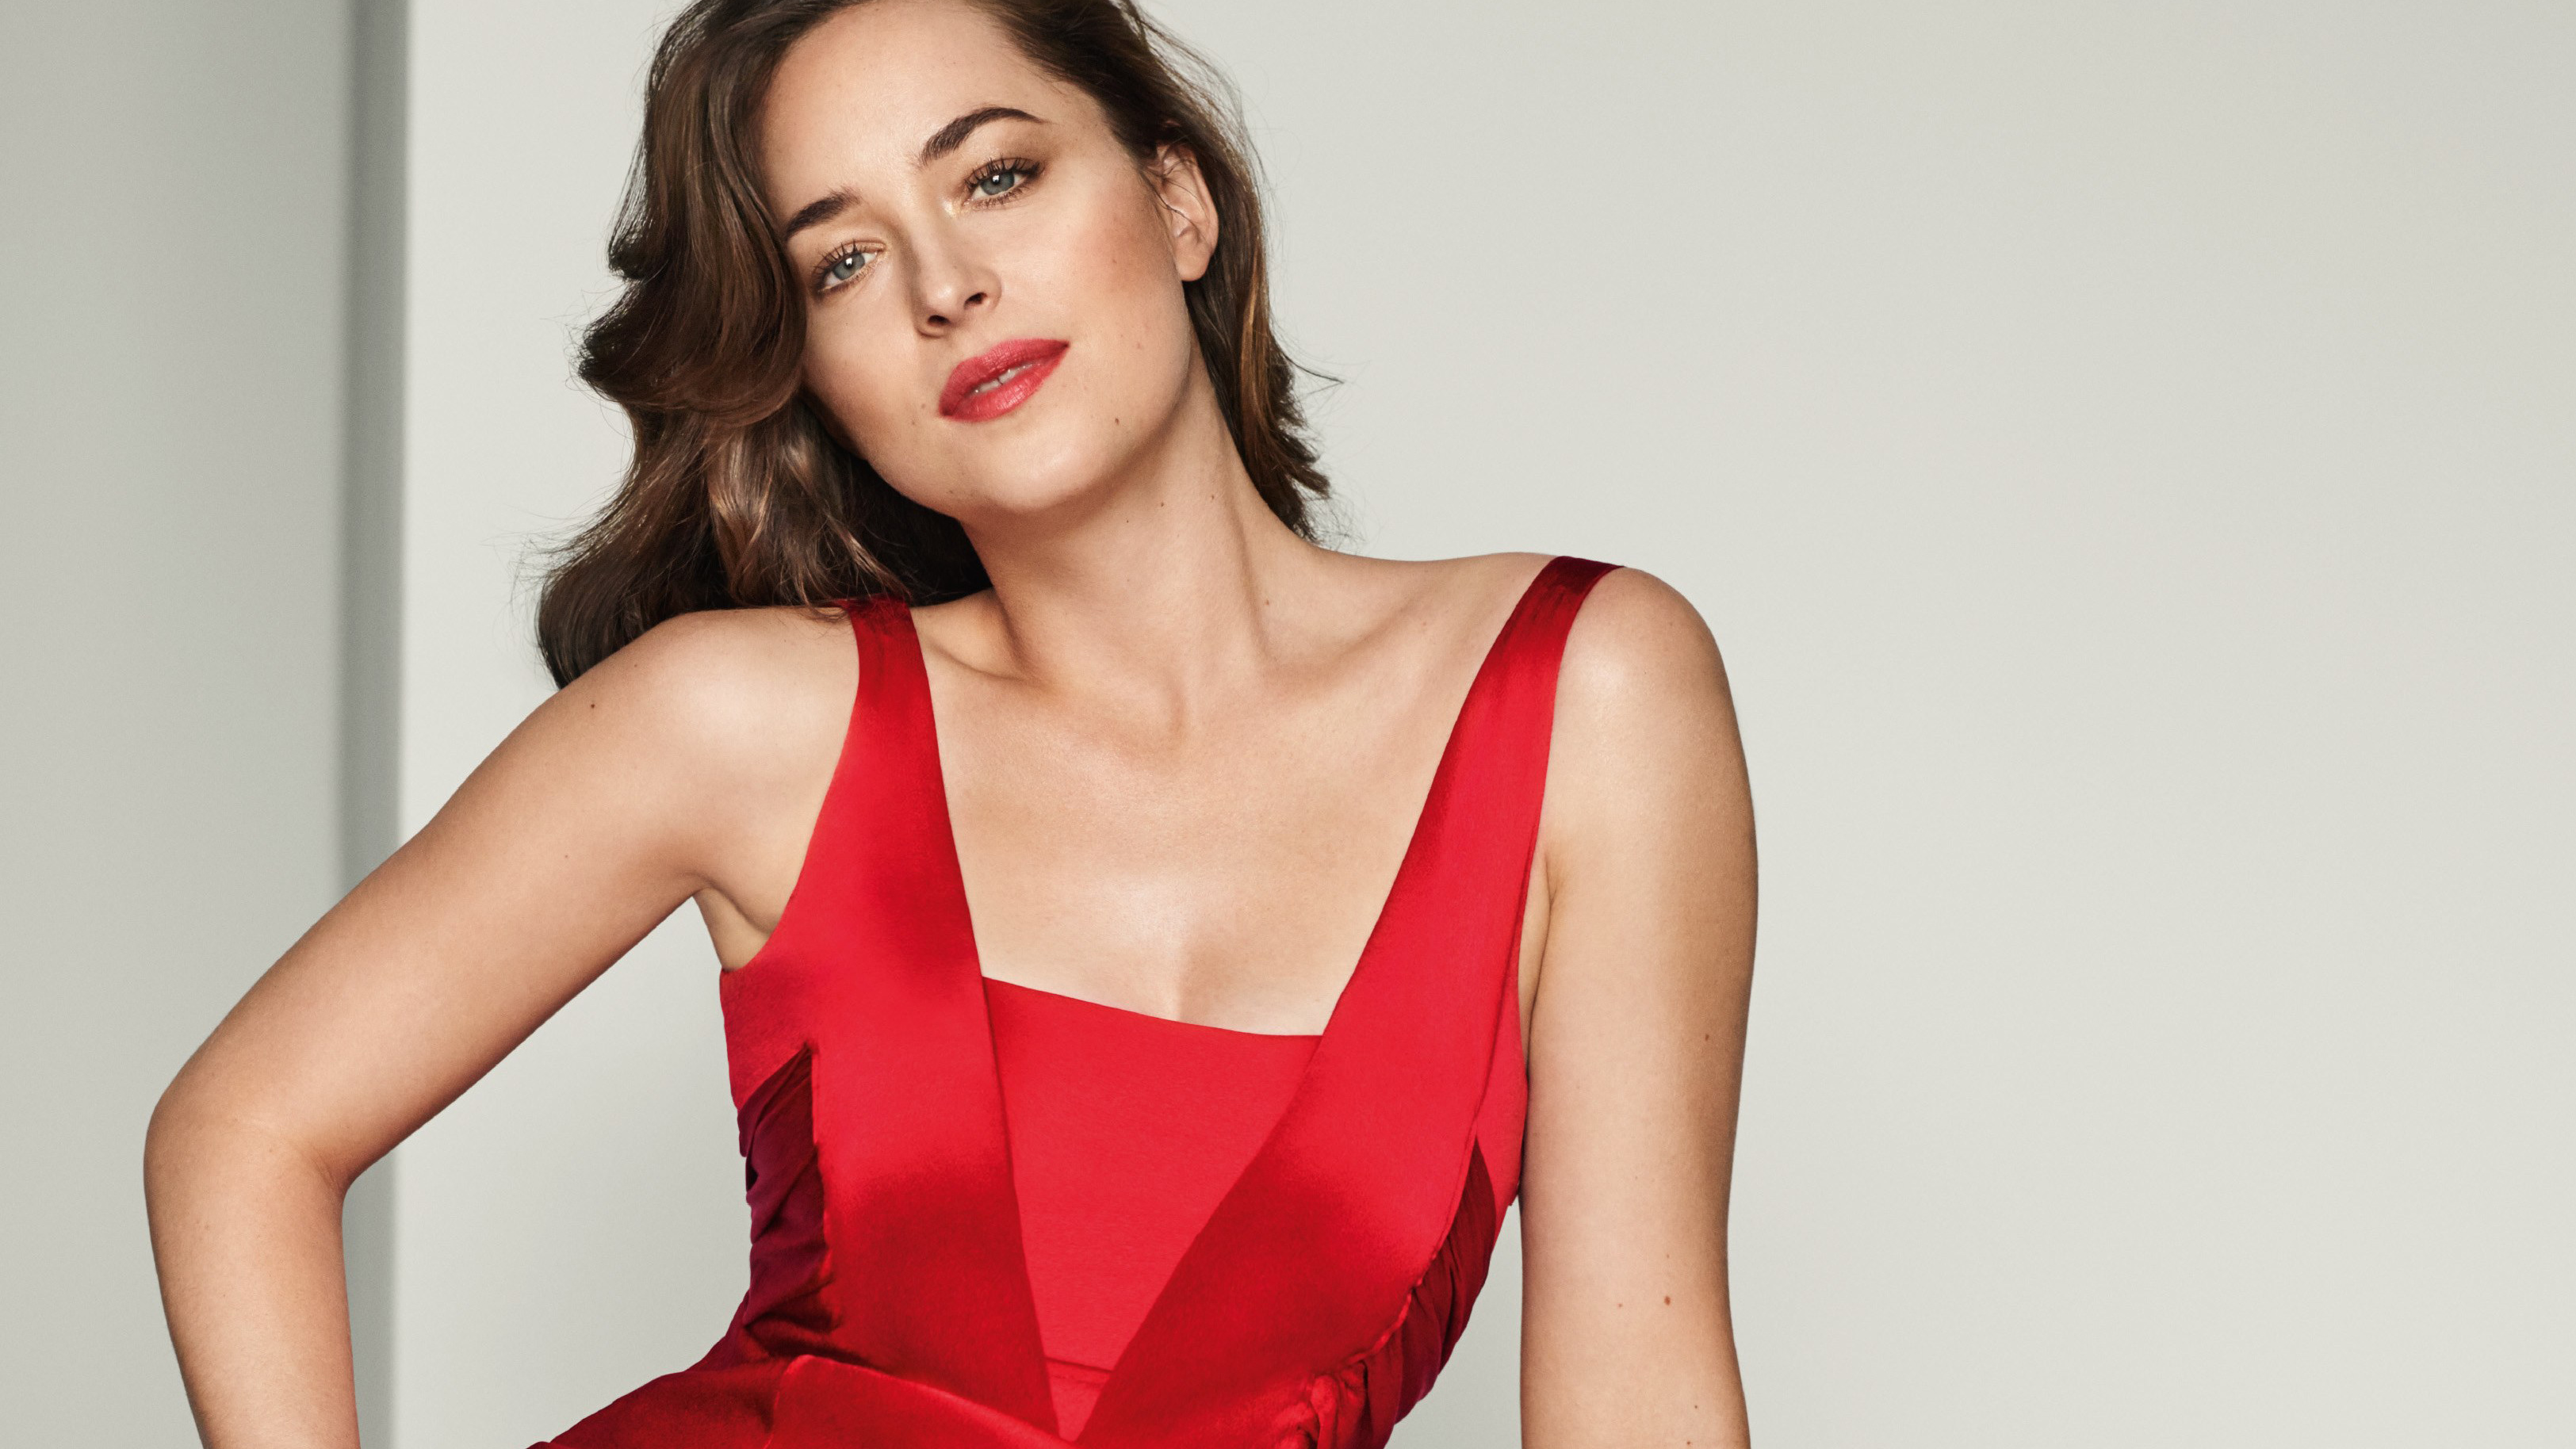 2880x1800 Dakota Johnson In Red Outfit Macbook Pro Retina Wallpaper Hd Celebrities 4k Wallpapers Images Photos And Background